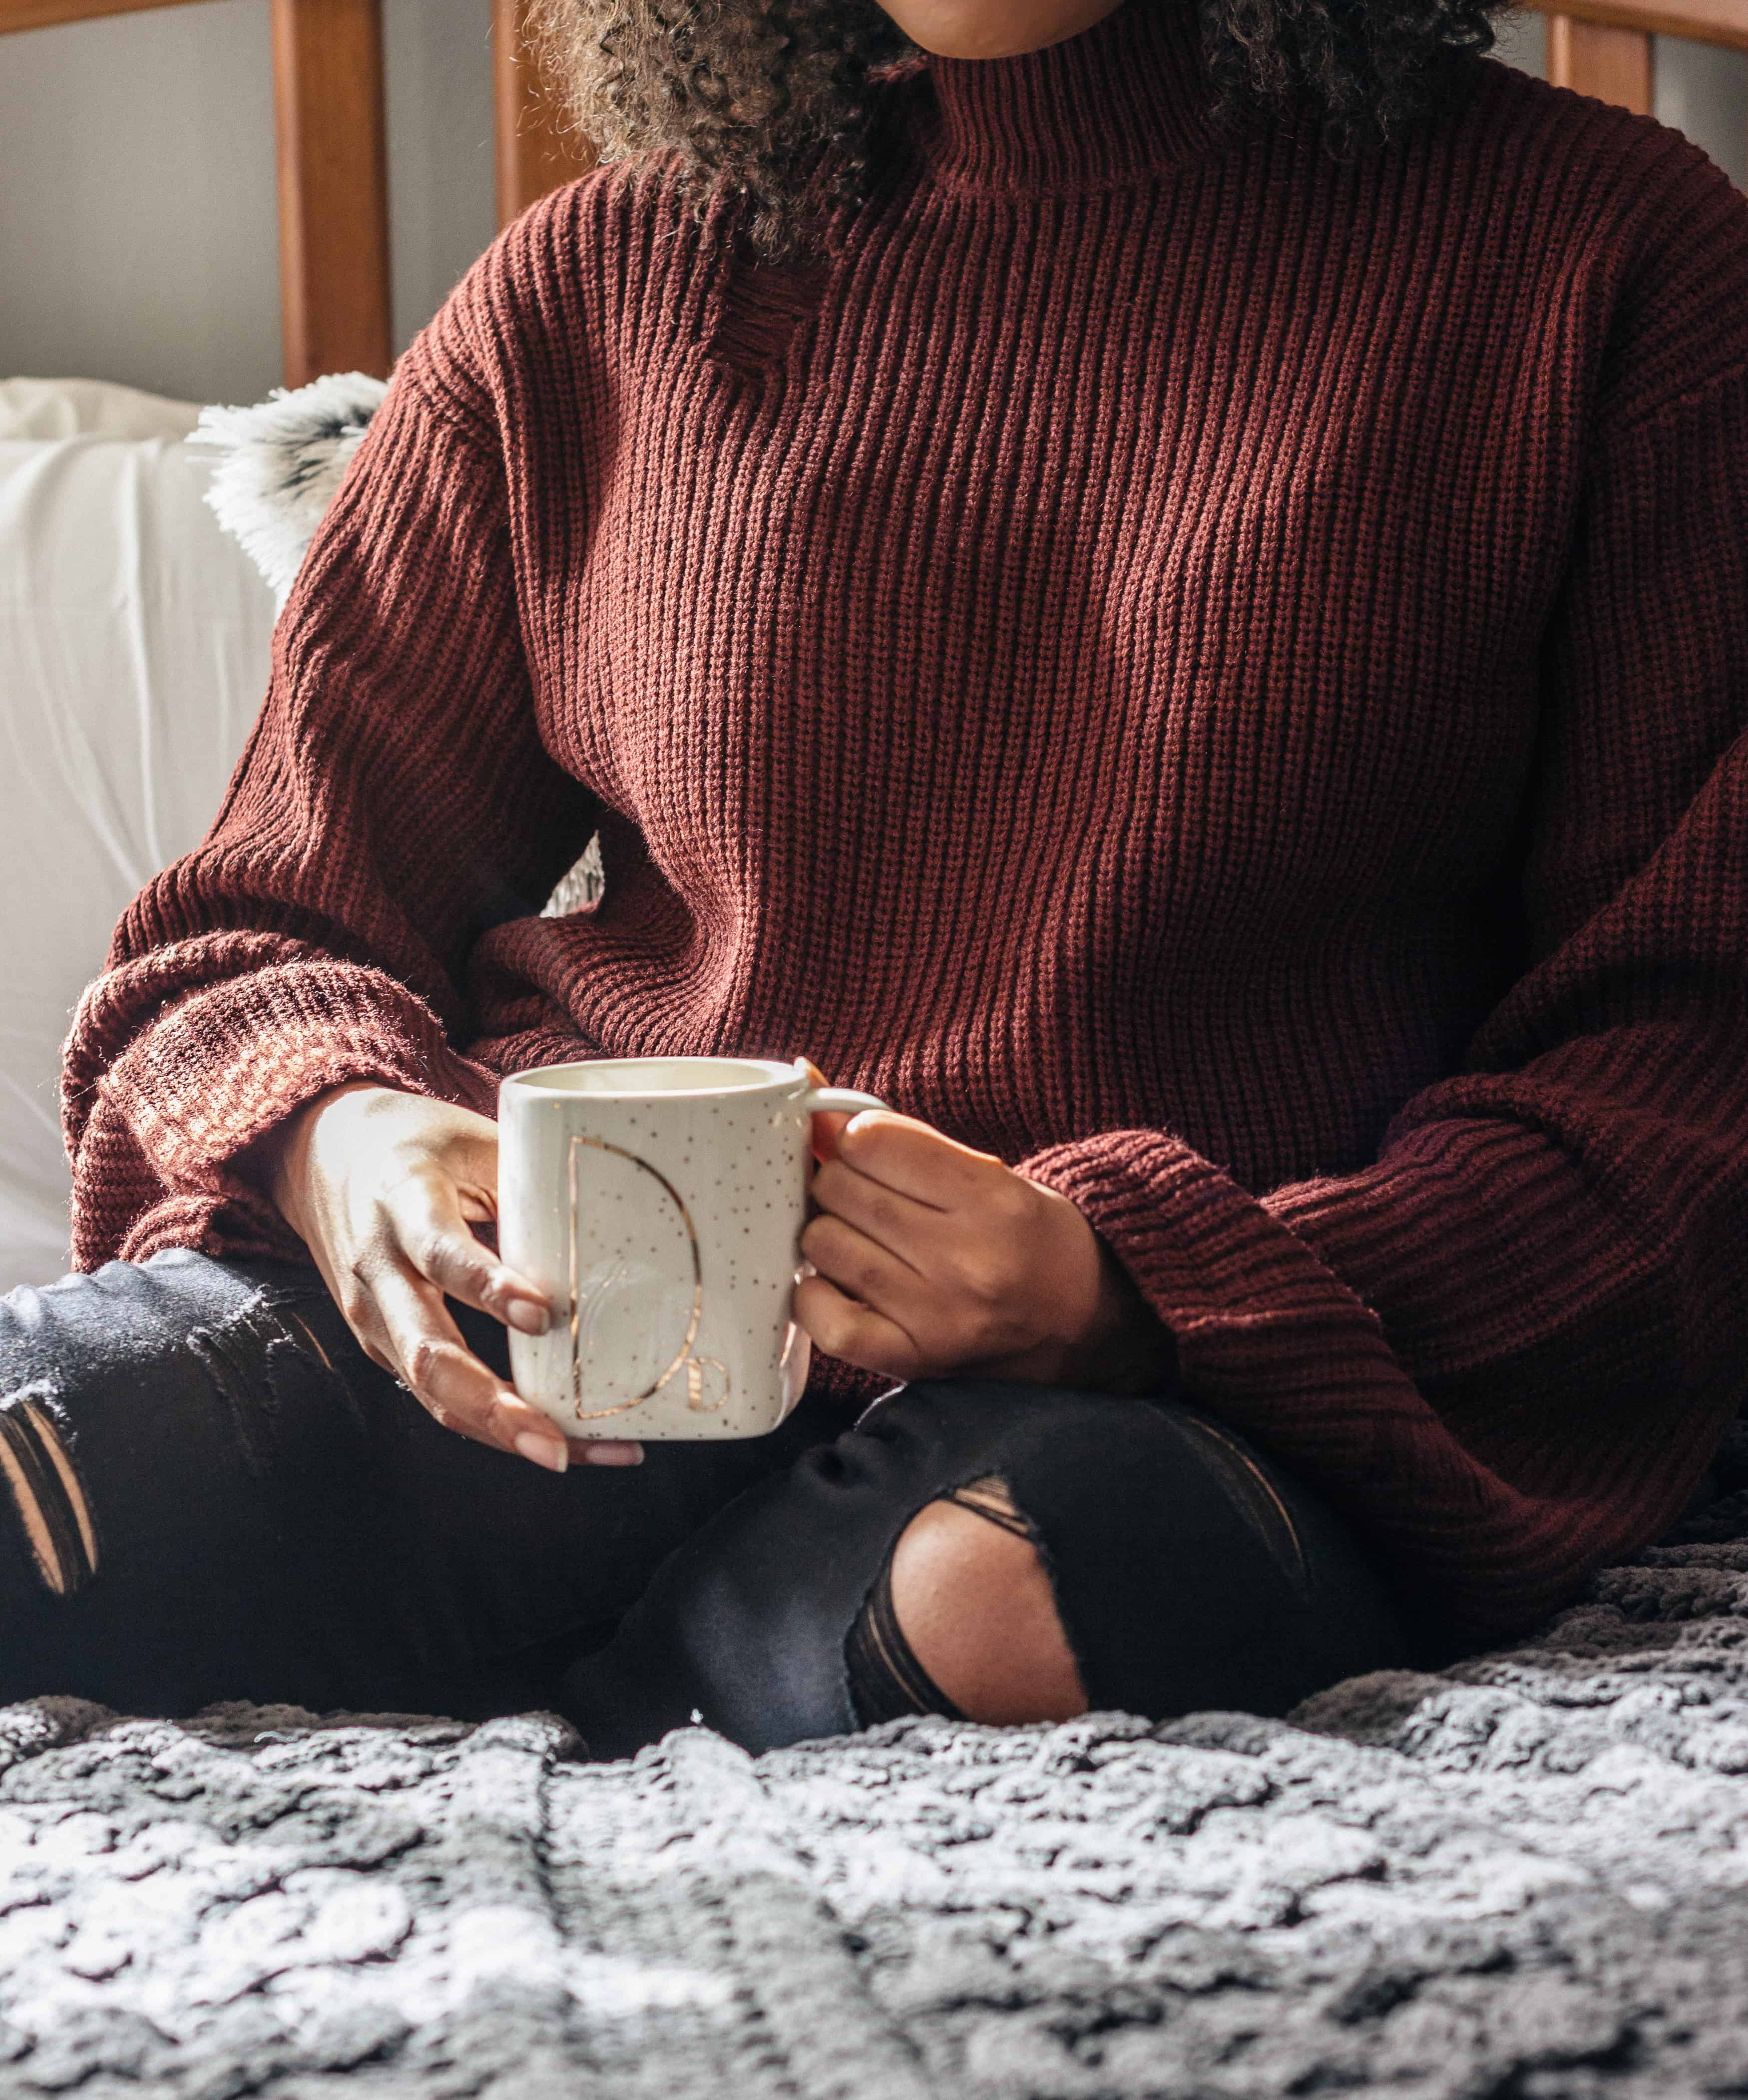 3 Casual Fall Favorites from Tobi. I'm sharing a few of my favorite fashion finds for fall. Click pin to see how I styled this Tobi chunky knit sweater with distressed denim and shop my looks.